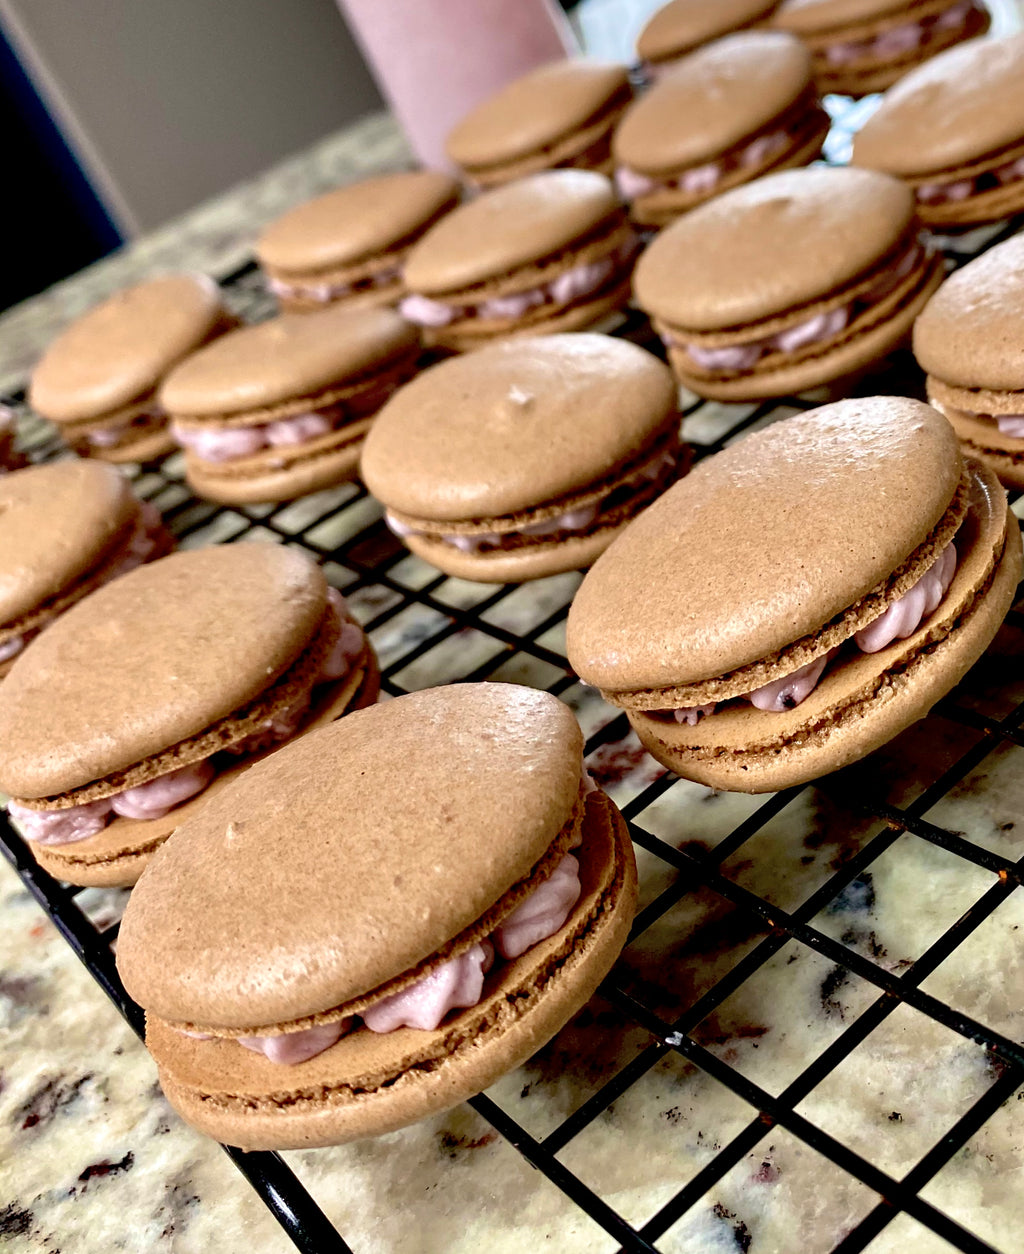 Chocolate Lemon Blueberry Macarons